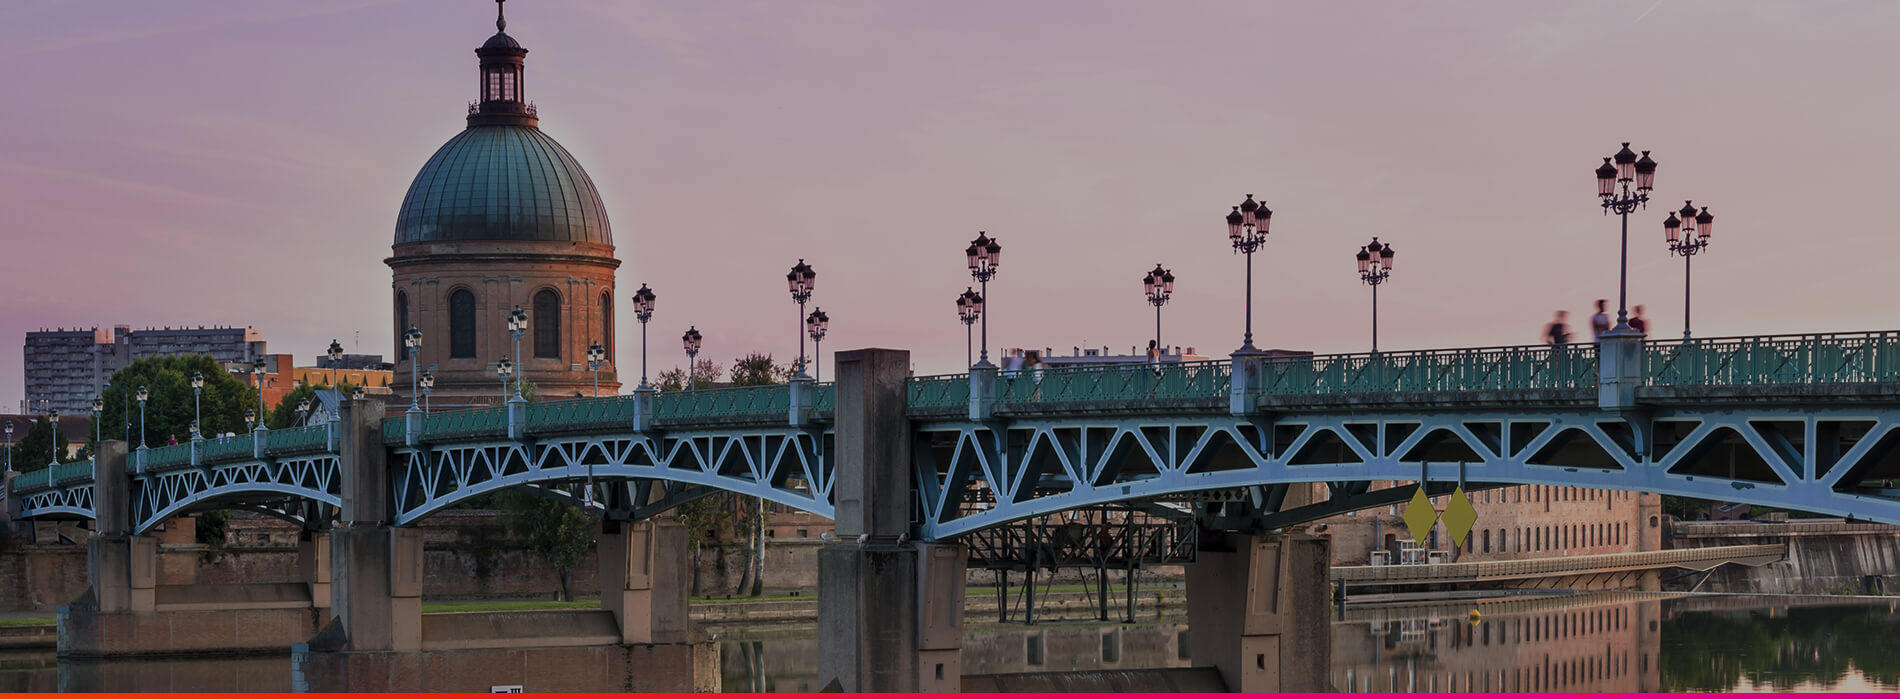 Toulouse Welcome - Slider Accueil - Toulouse